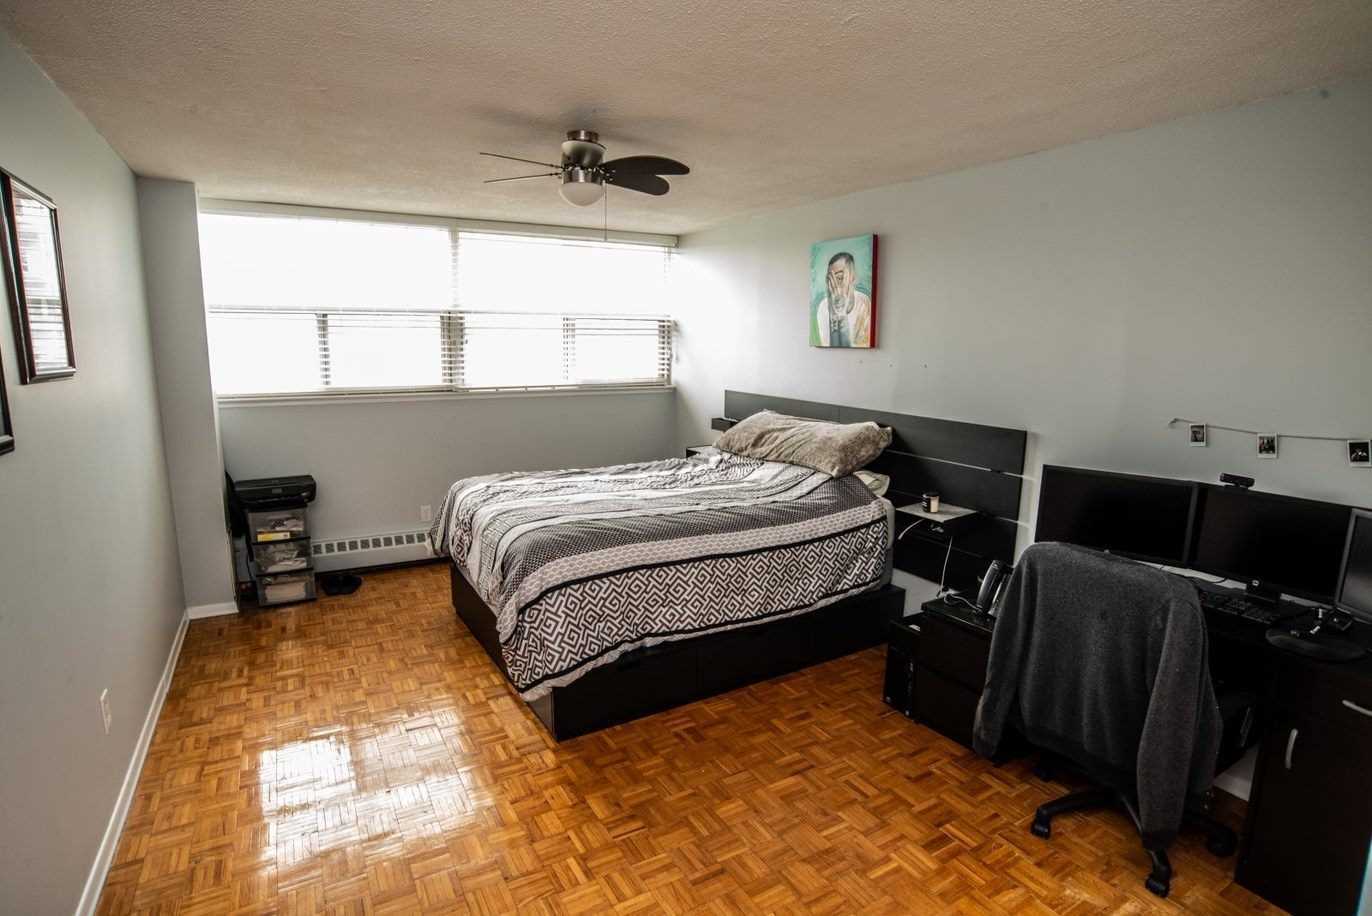 Image 6 of 20 showing inside of 1 Bedroom Condo Apt Apartment for Sale at 215 Glenridge Ave Unit# 310, St. Catharines L2T3J7